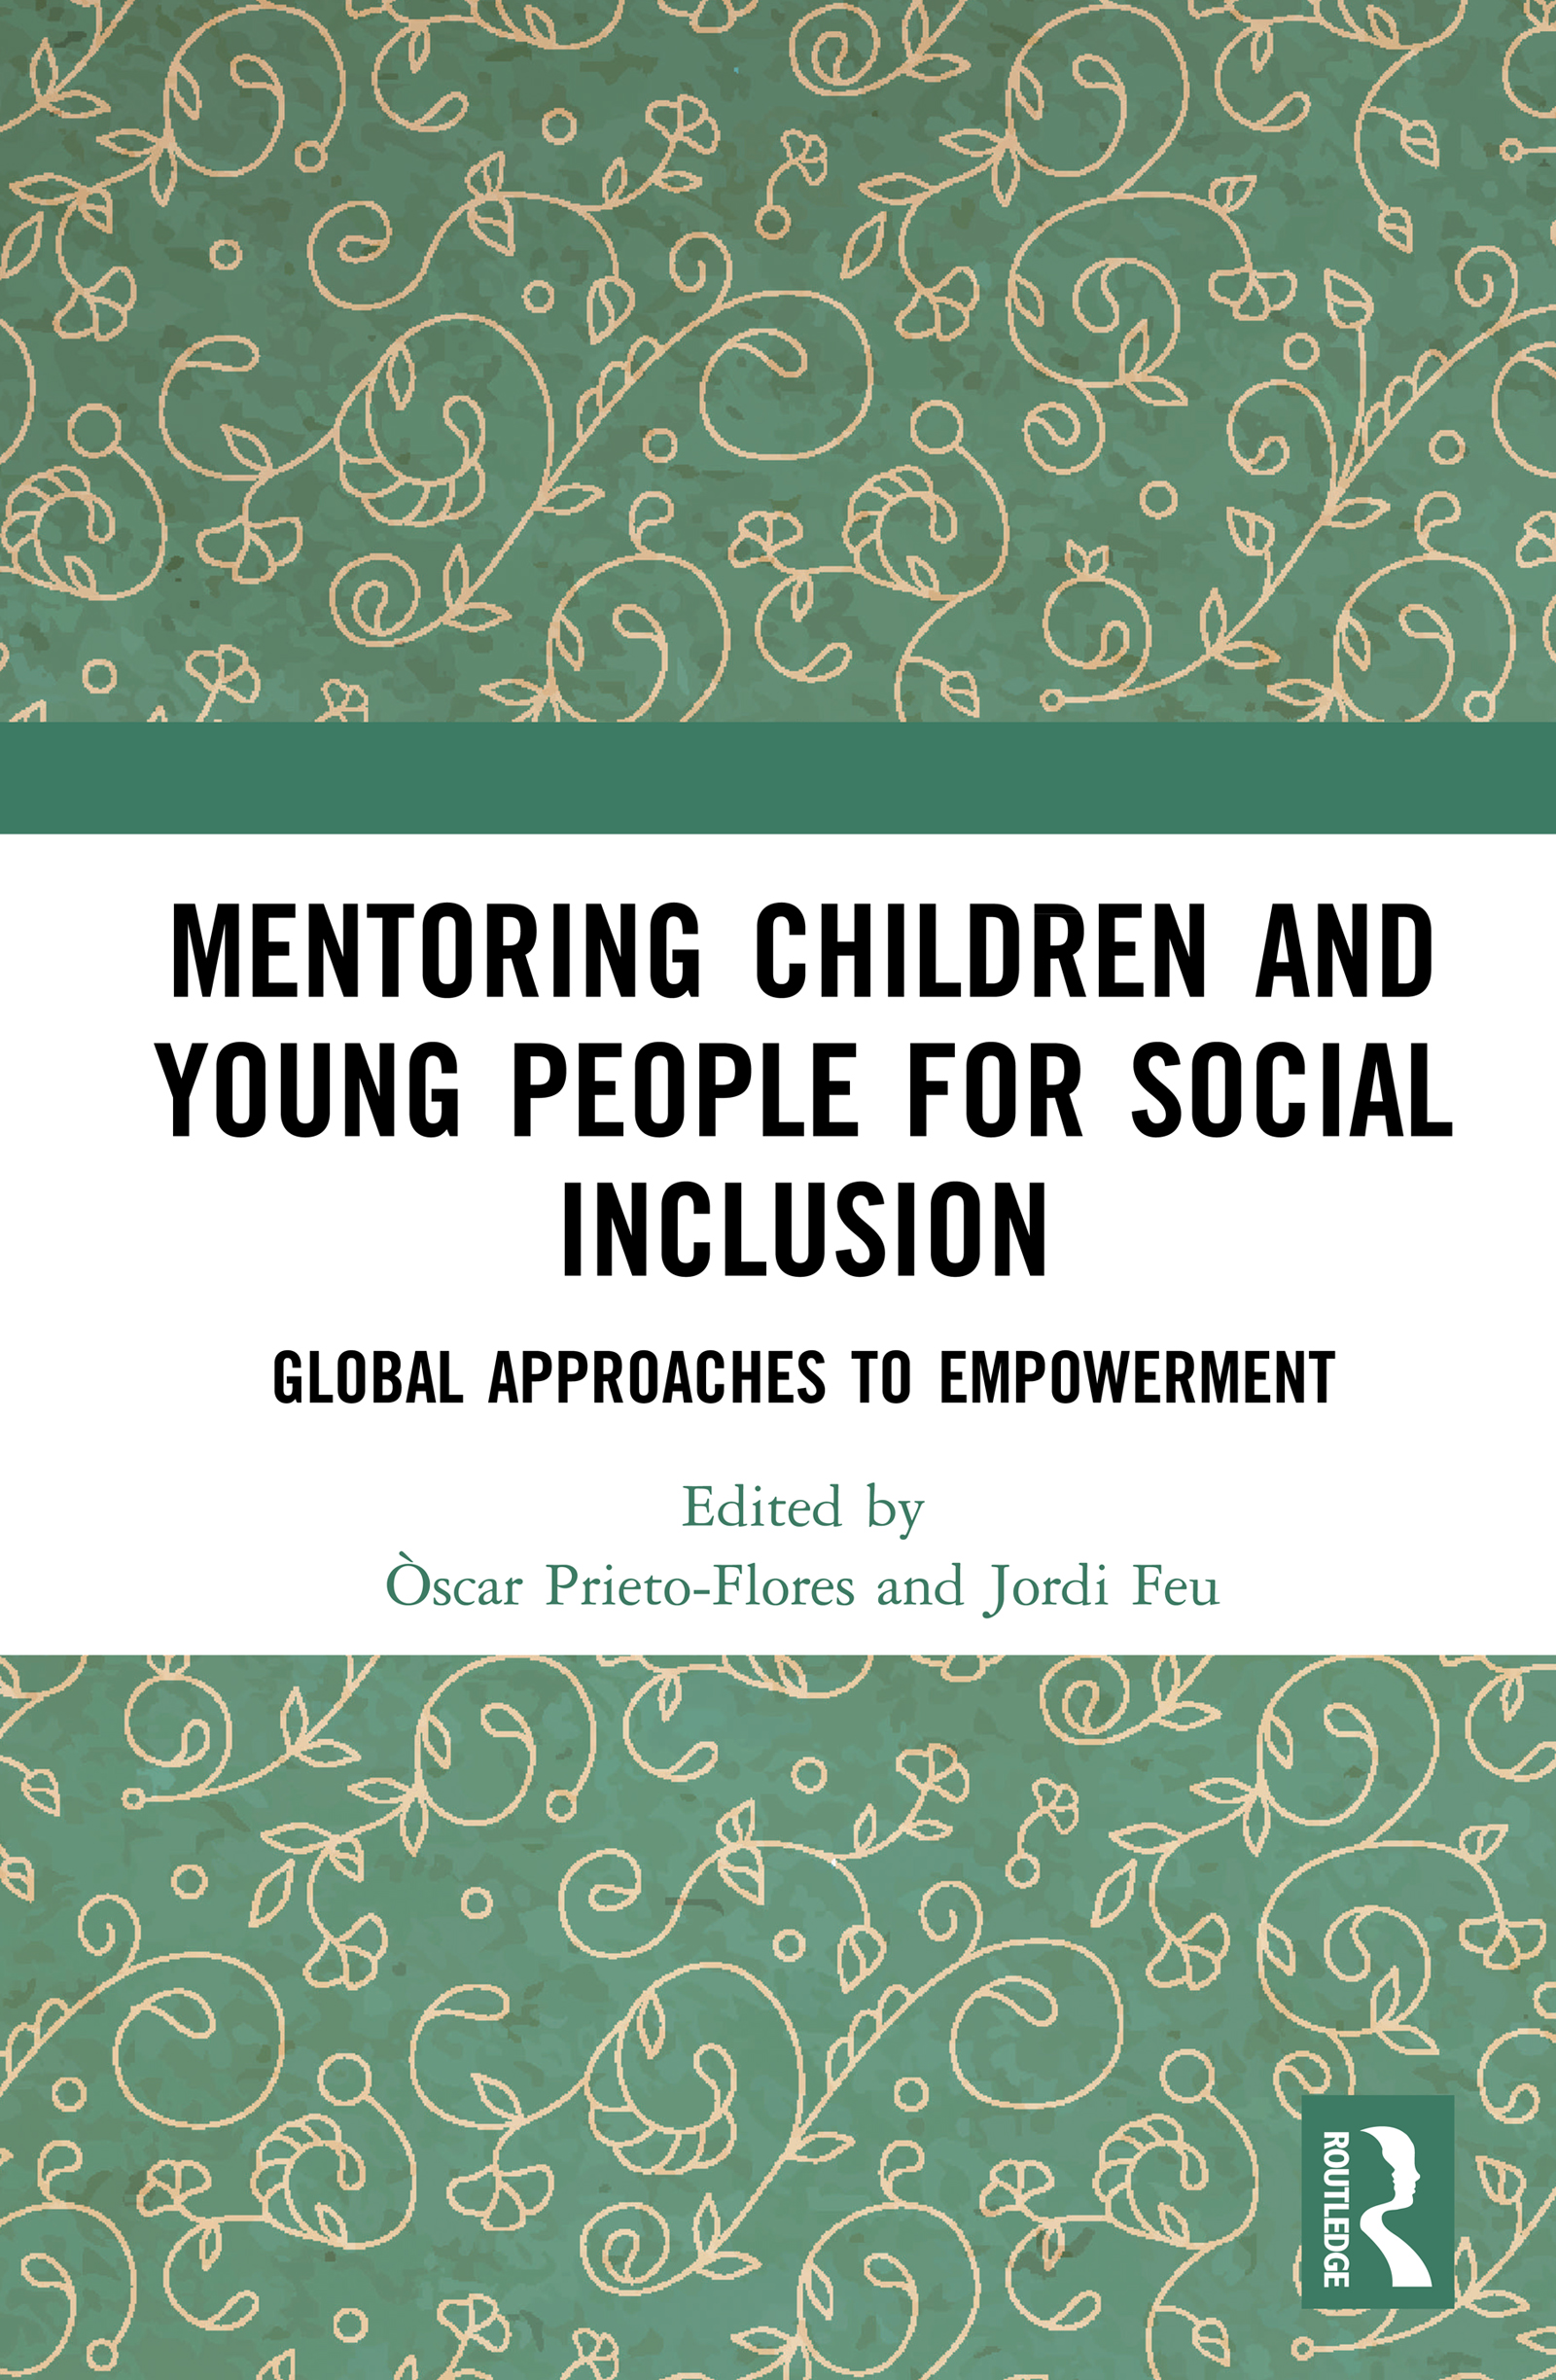 Mentoring Children and Young People for Social Inclusion